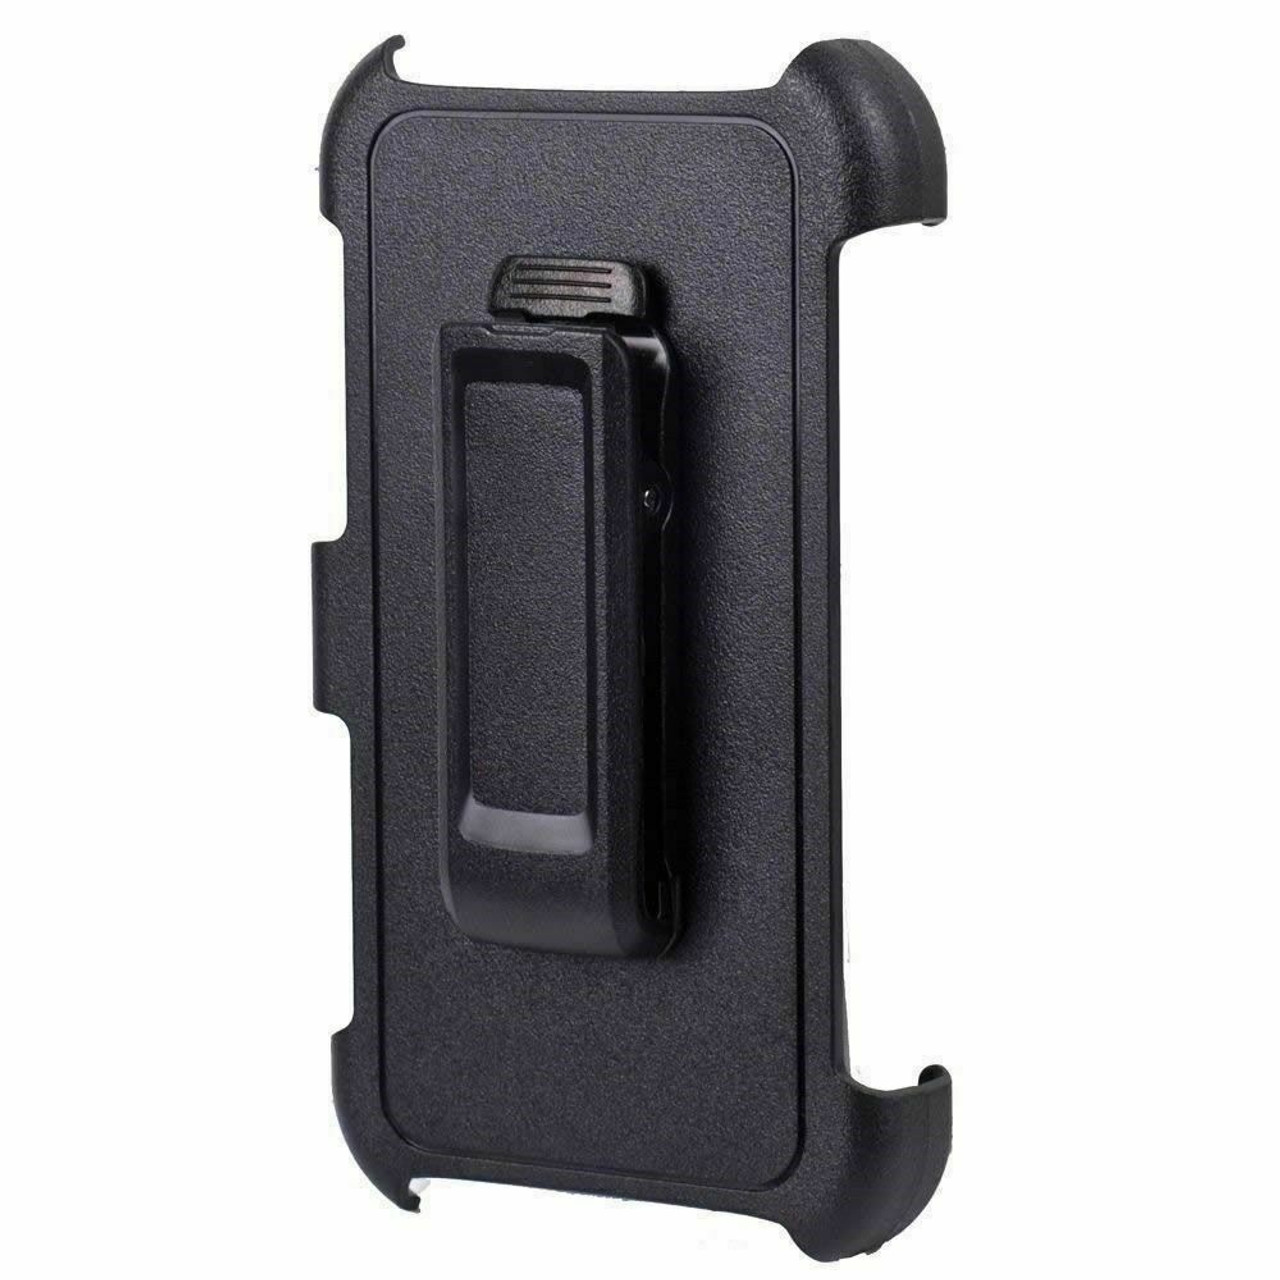 Belt Clip Holster Replacement Fits Samsung Galaxy Note 8 Otterbox Defender Case